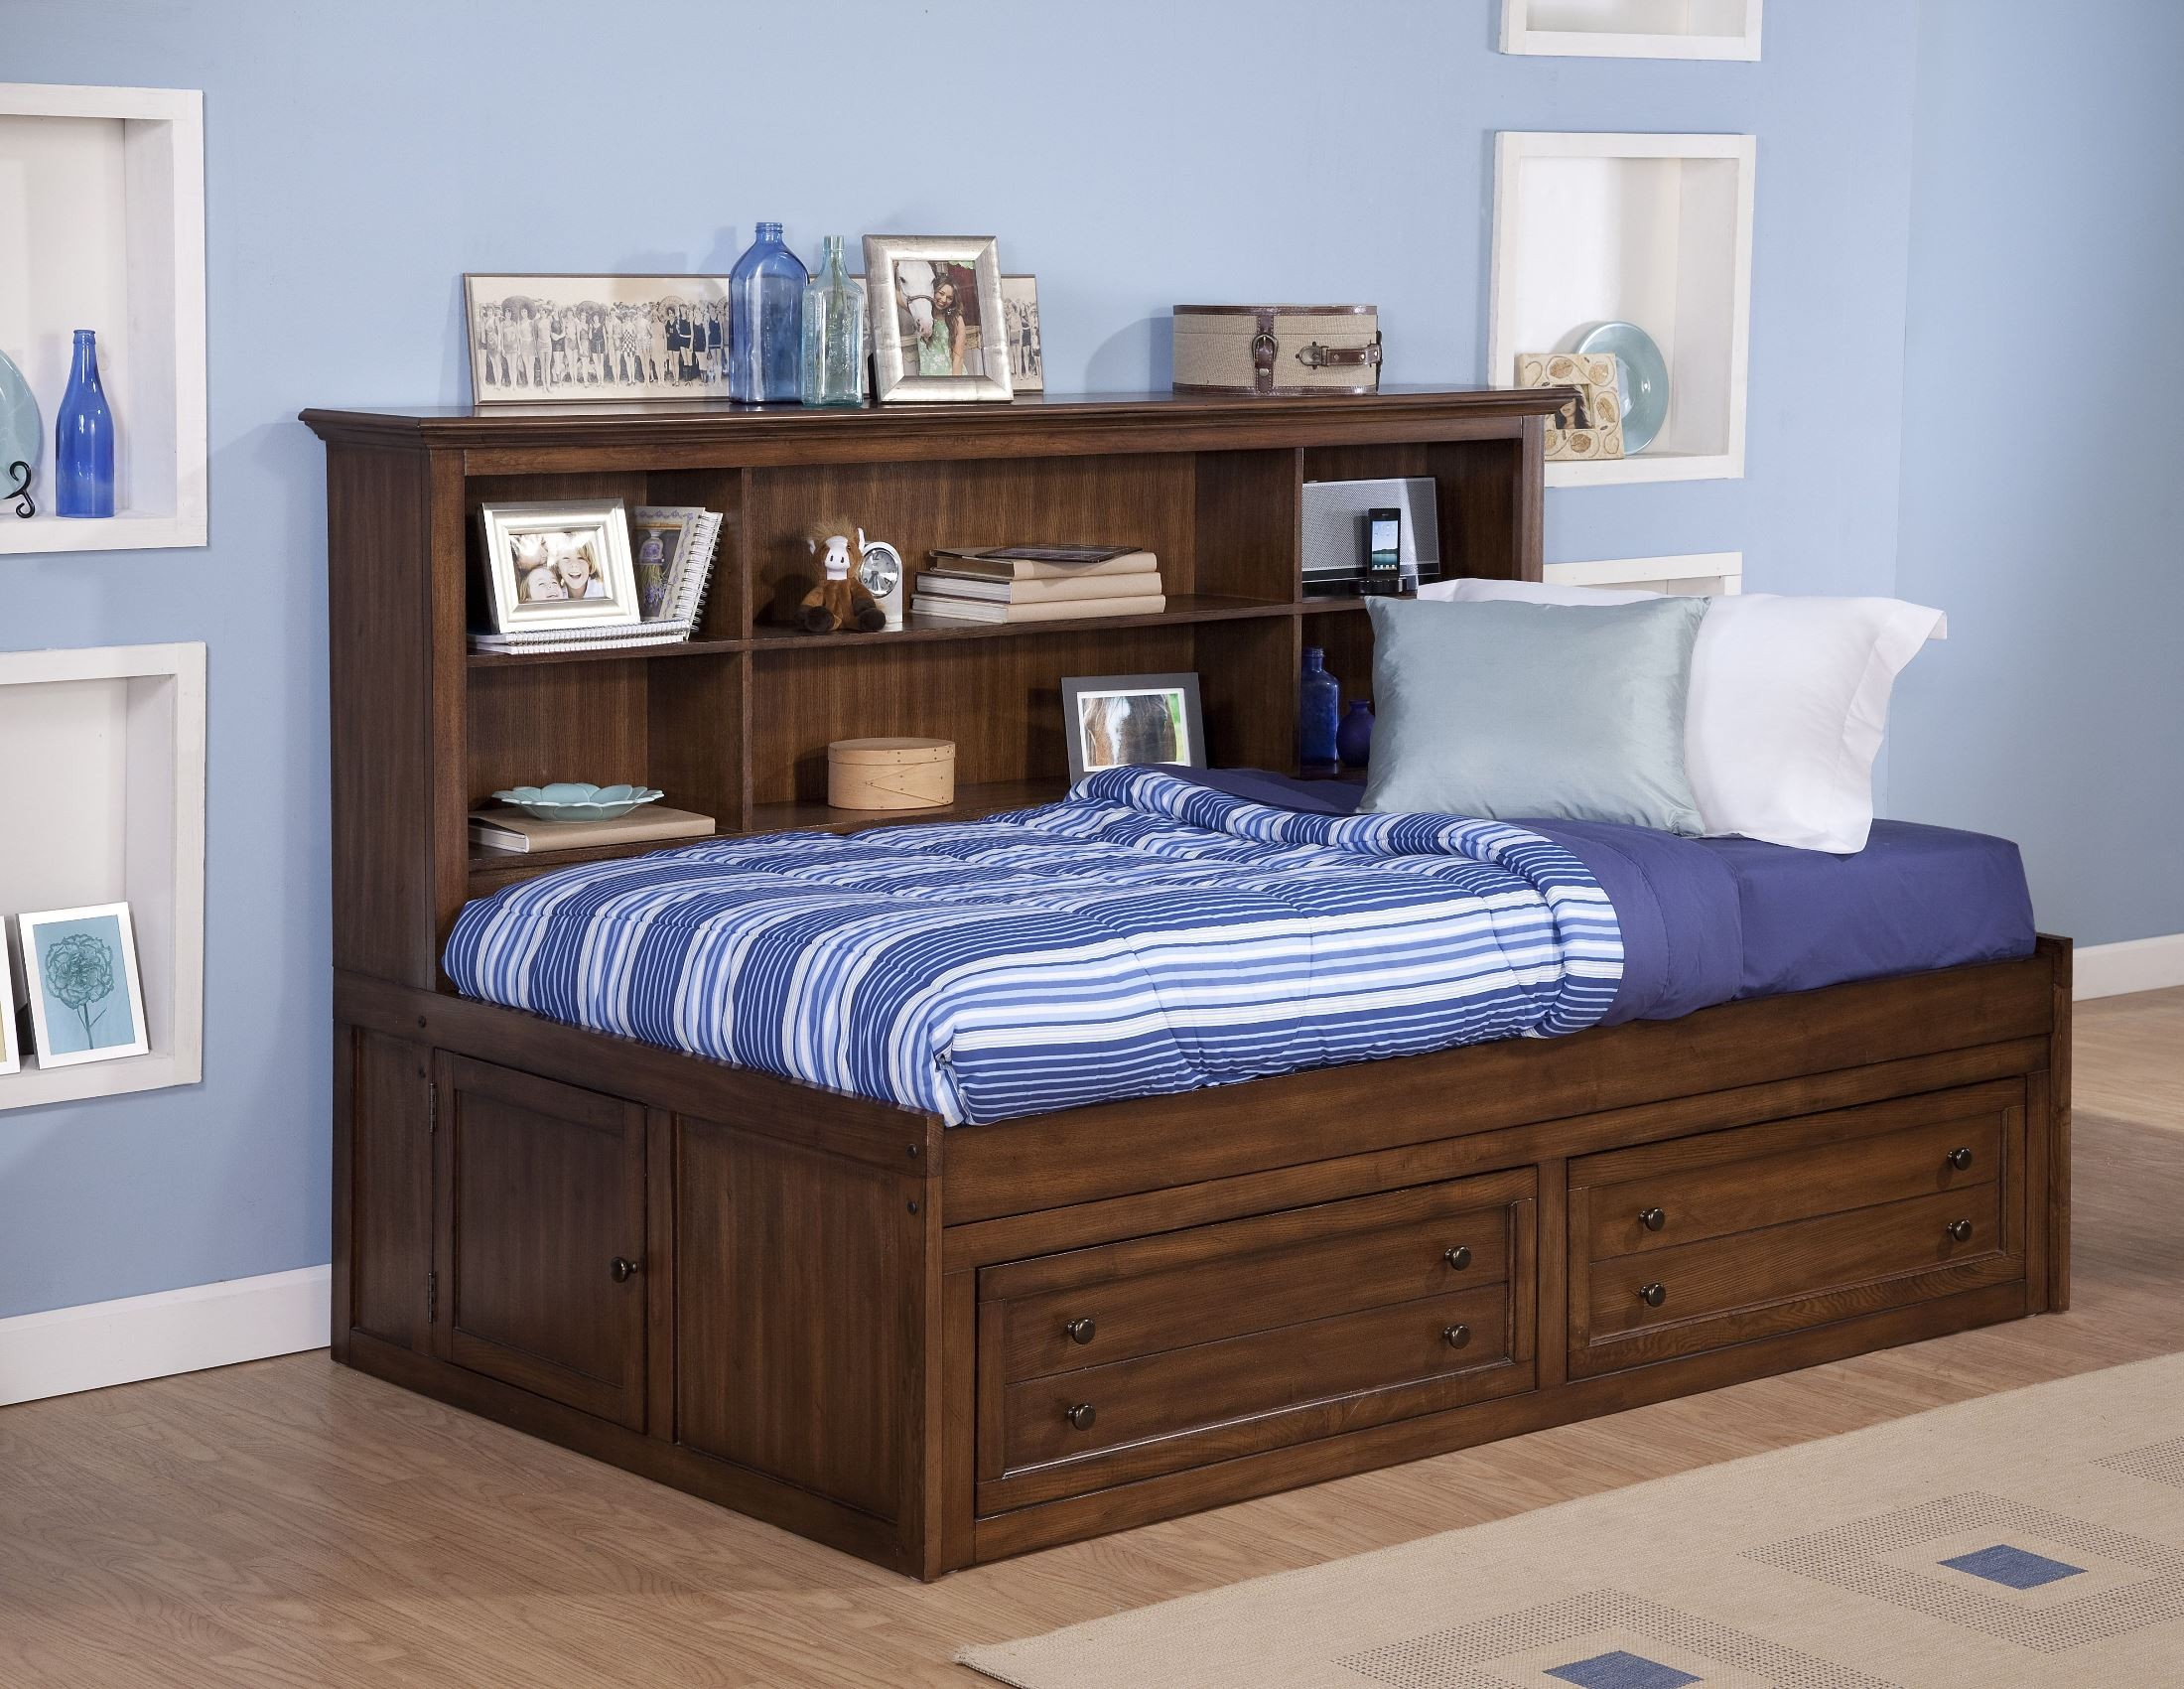 Logan Spice Twin Lounge Bed From New Classics 05 100 512